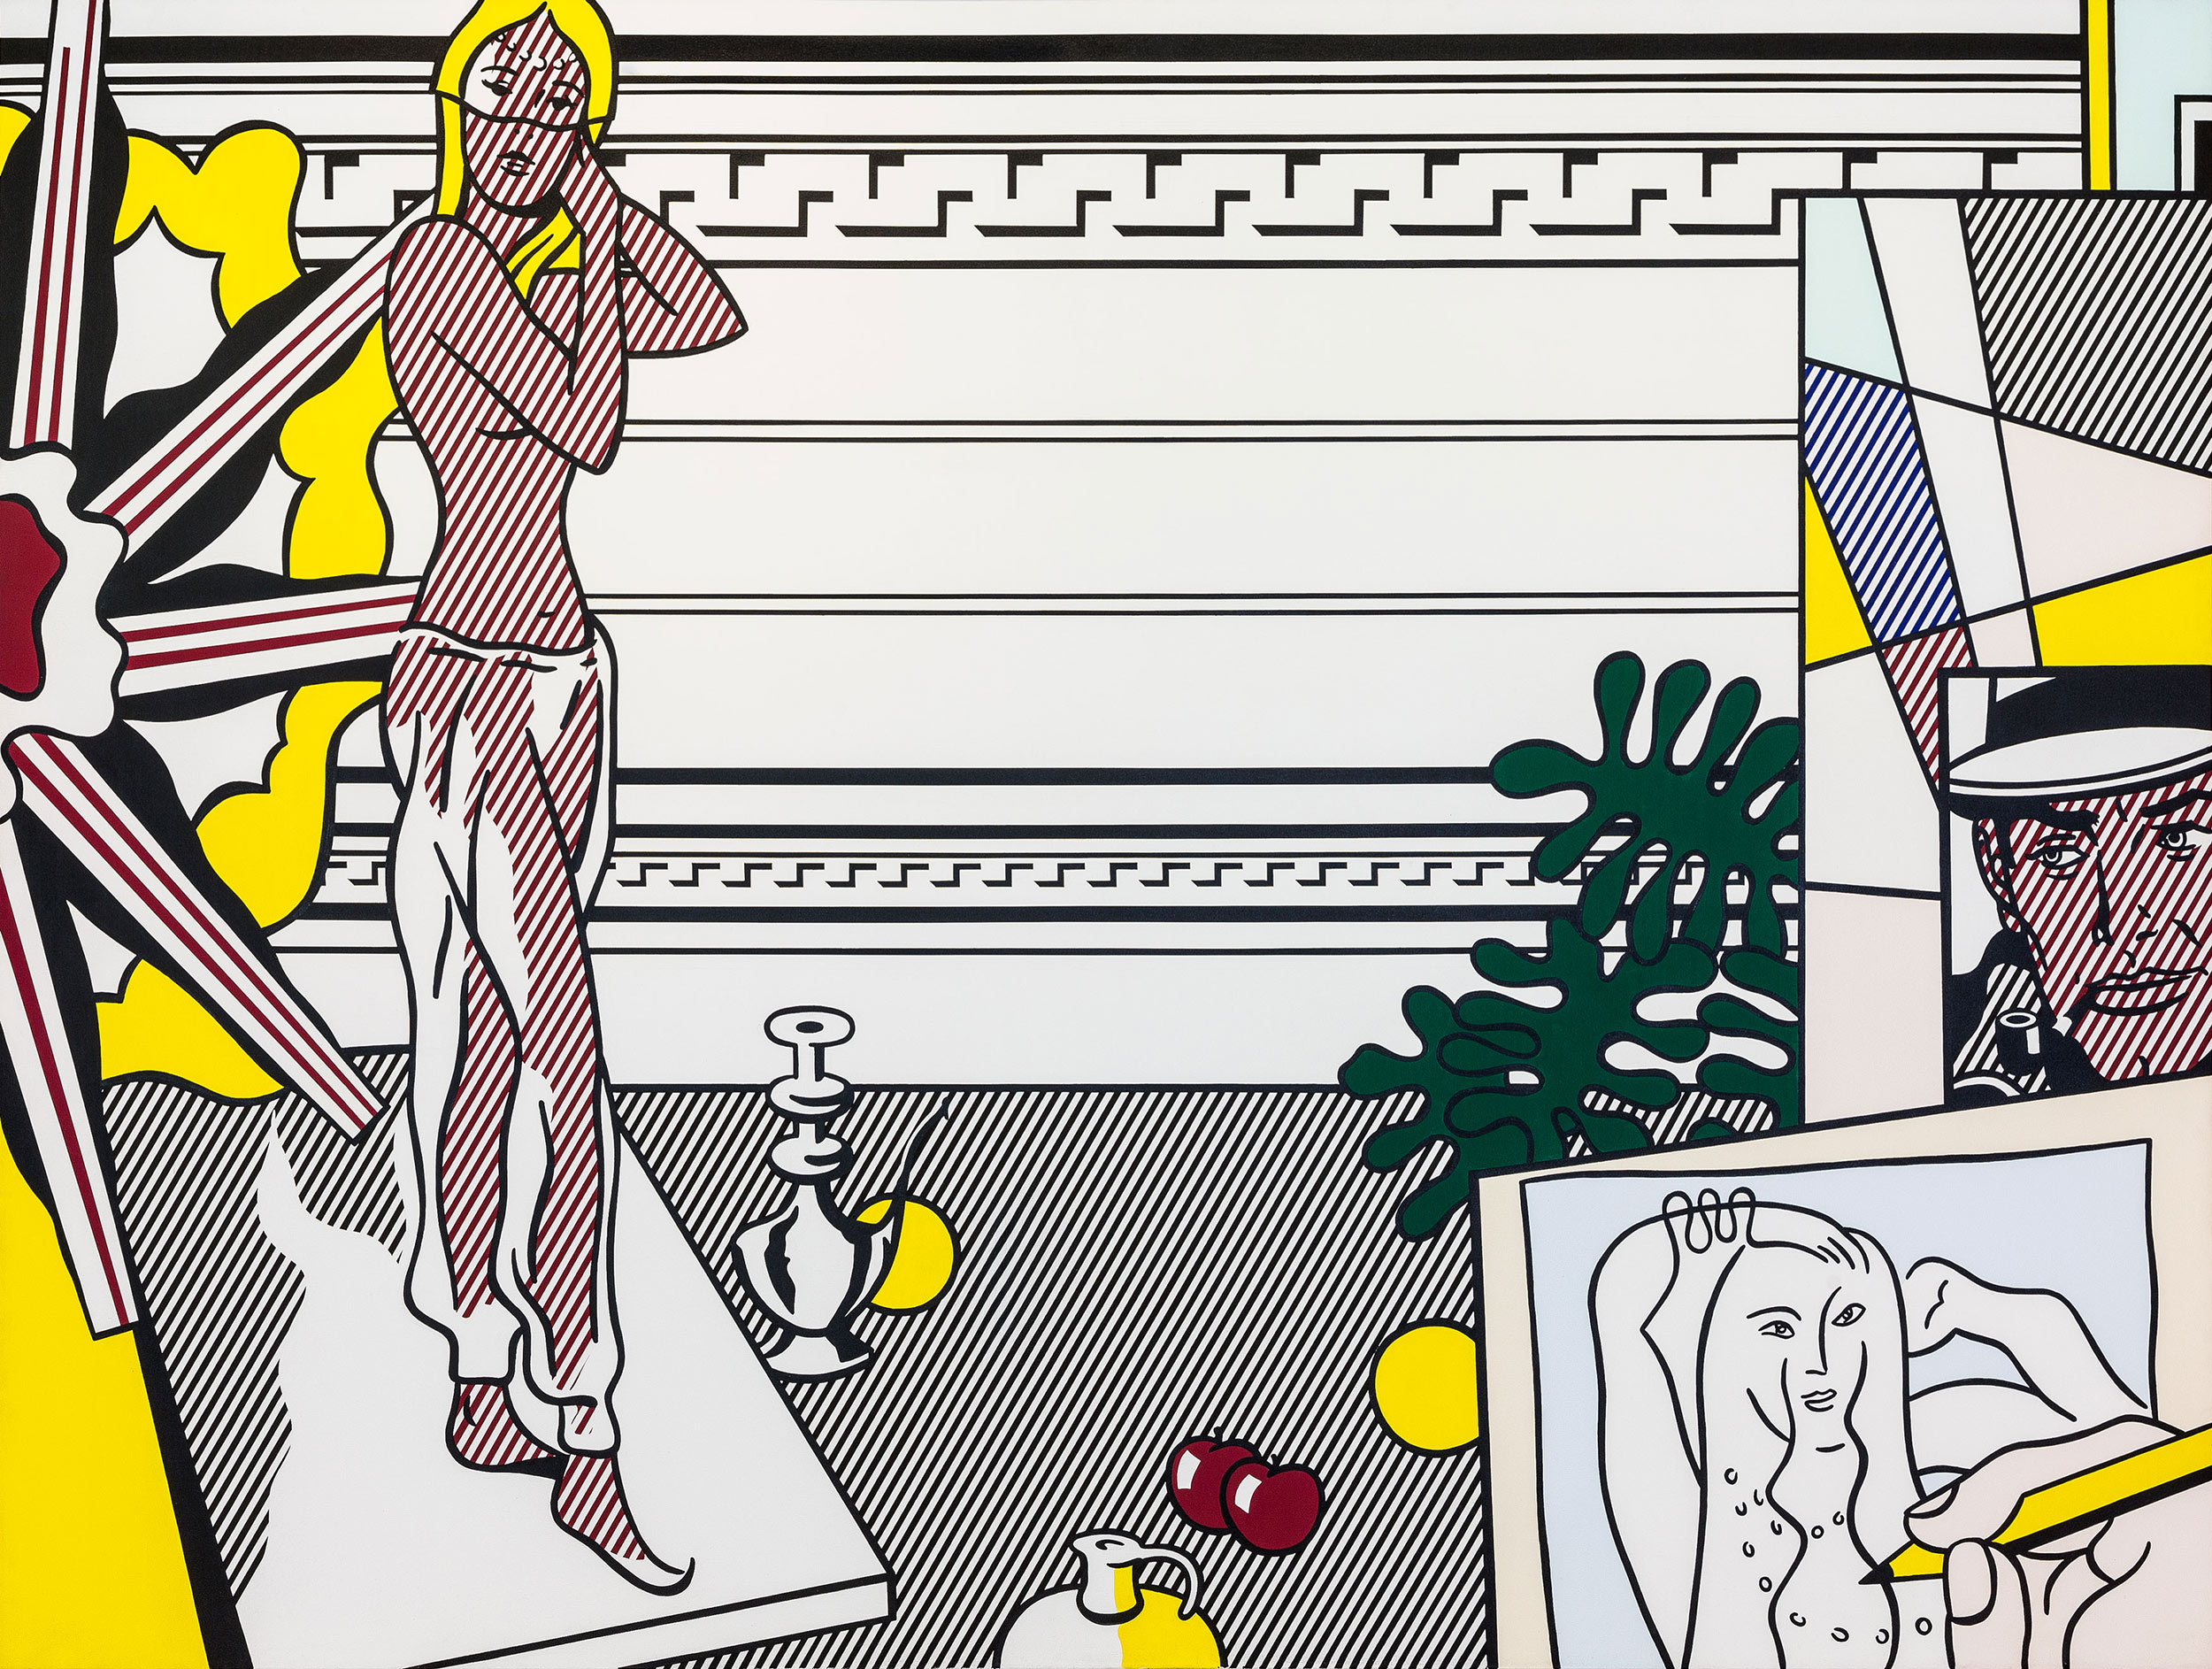 Image of artwork by Roy Lichtenstein, Artist's Studio with Model, 1974